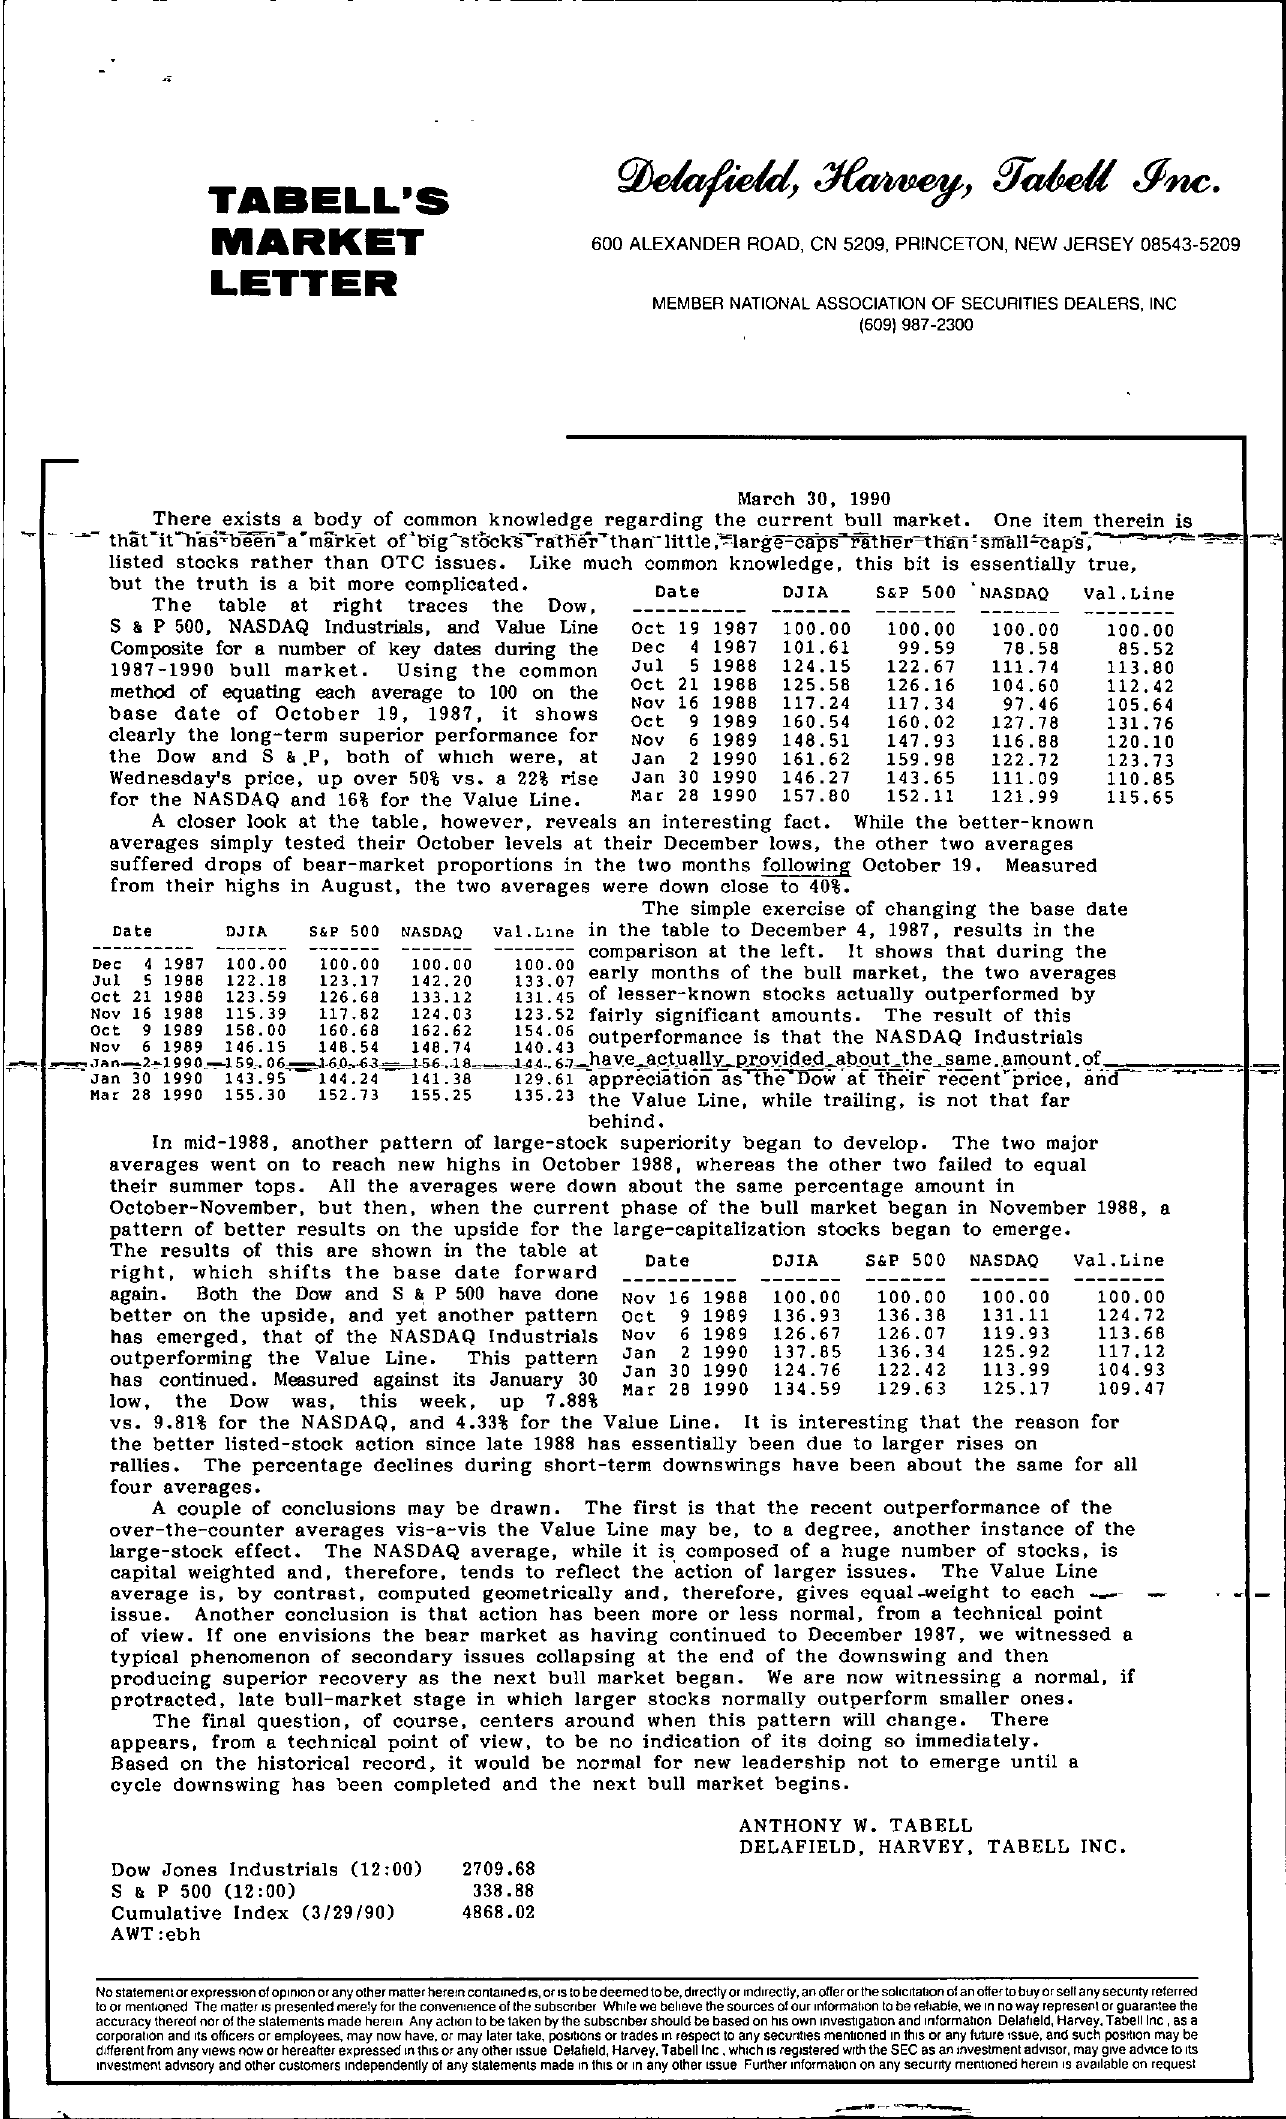 Tabell's Market Letter - March 30, 1990